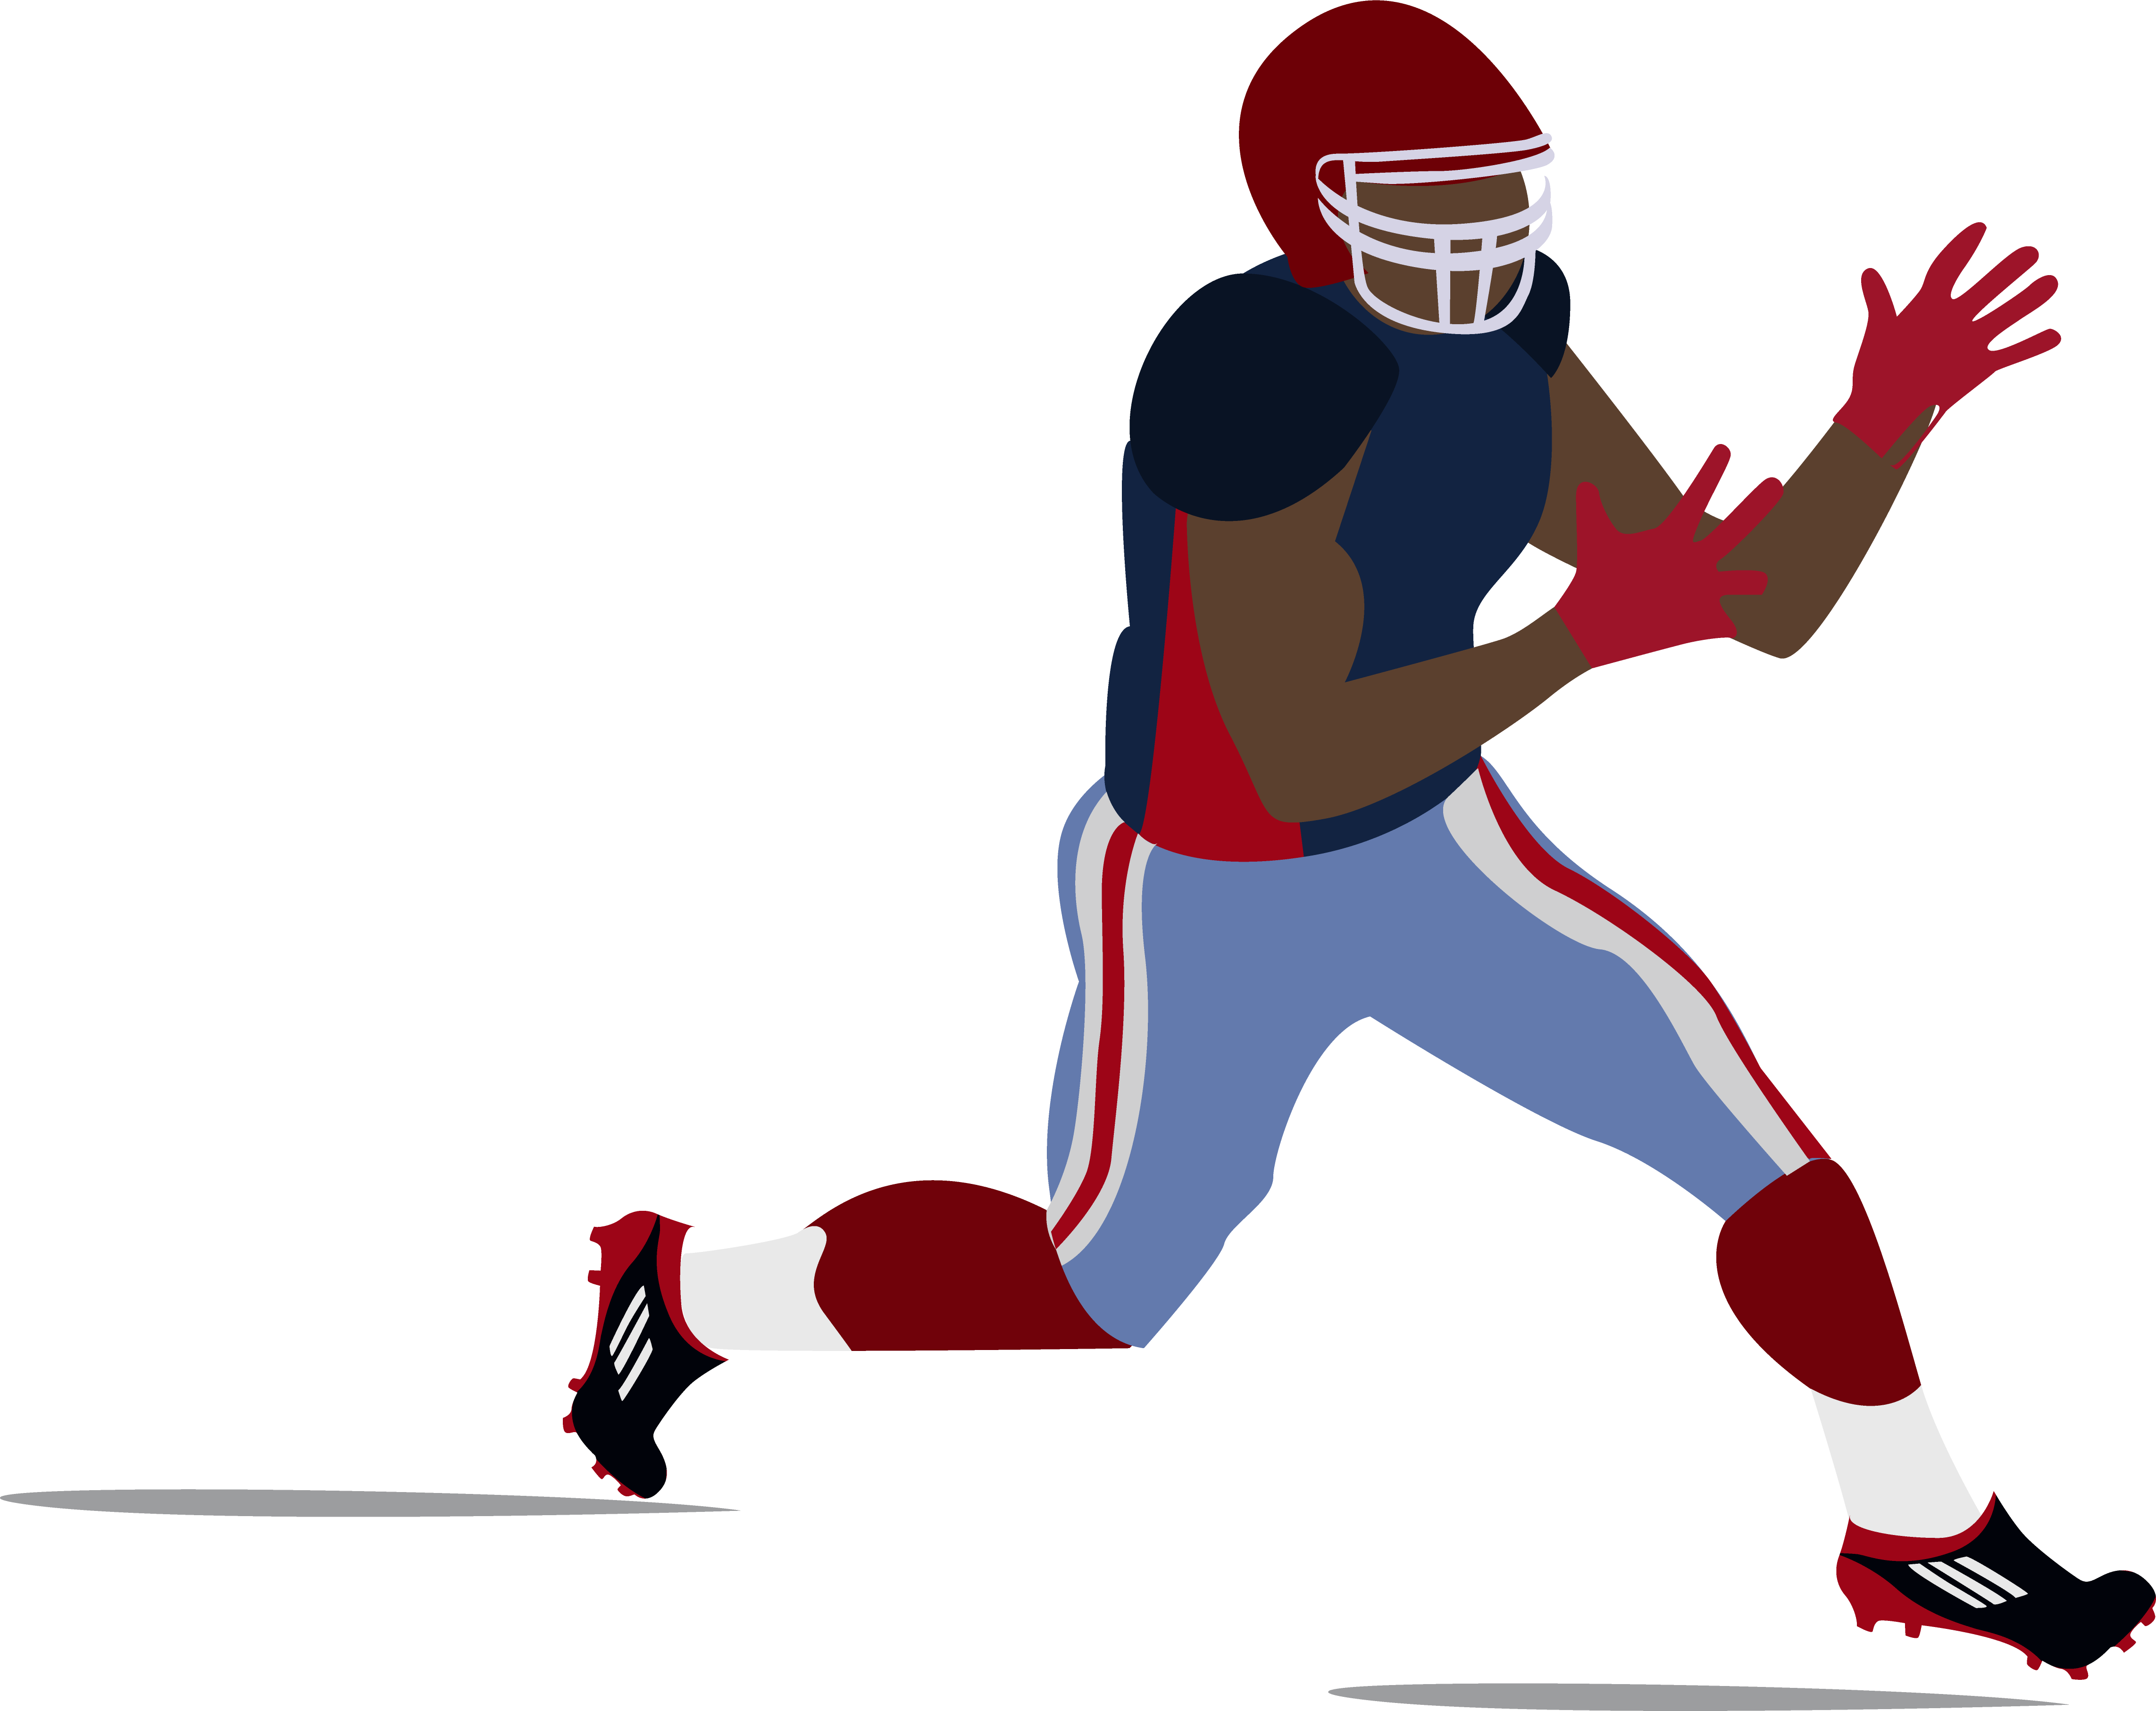 Cartoon football player clipart clipart library library Quarterback Clipart | Free download best Quarterback Clipart on ... clipart library library